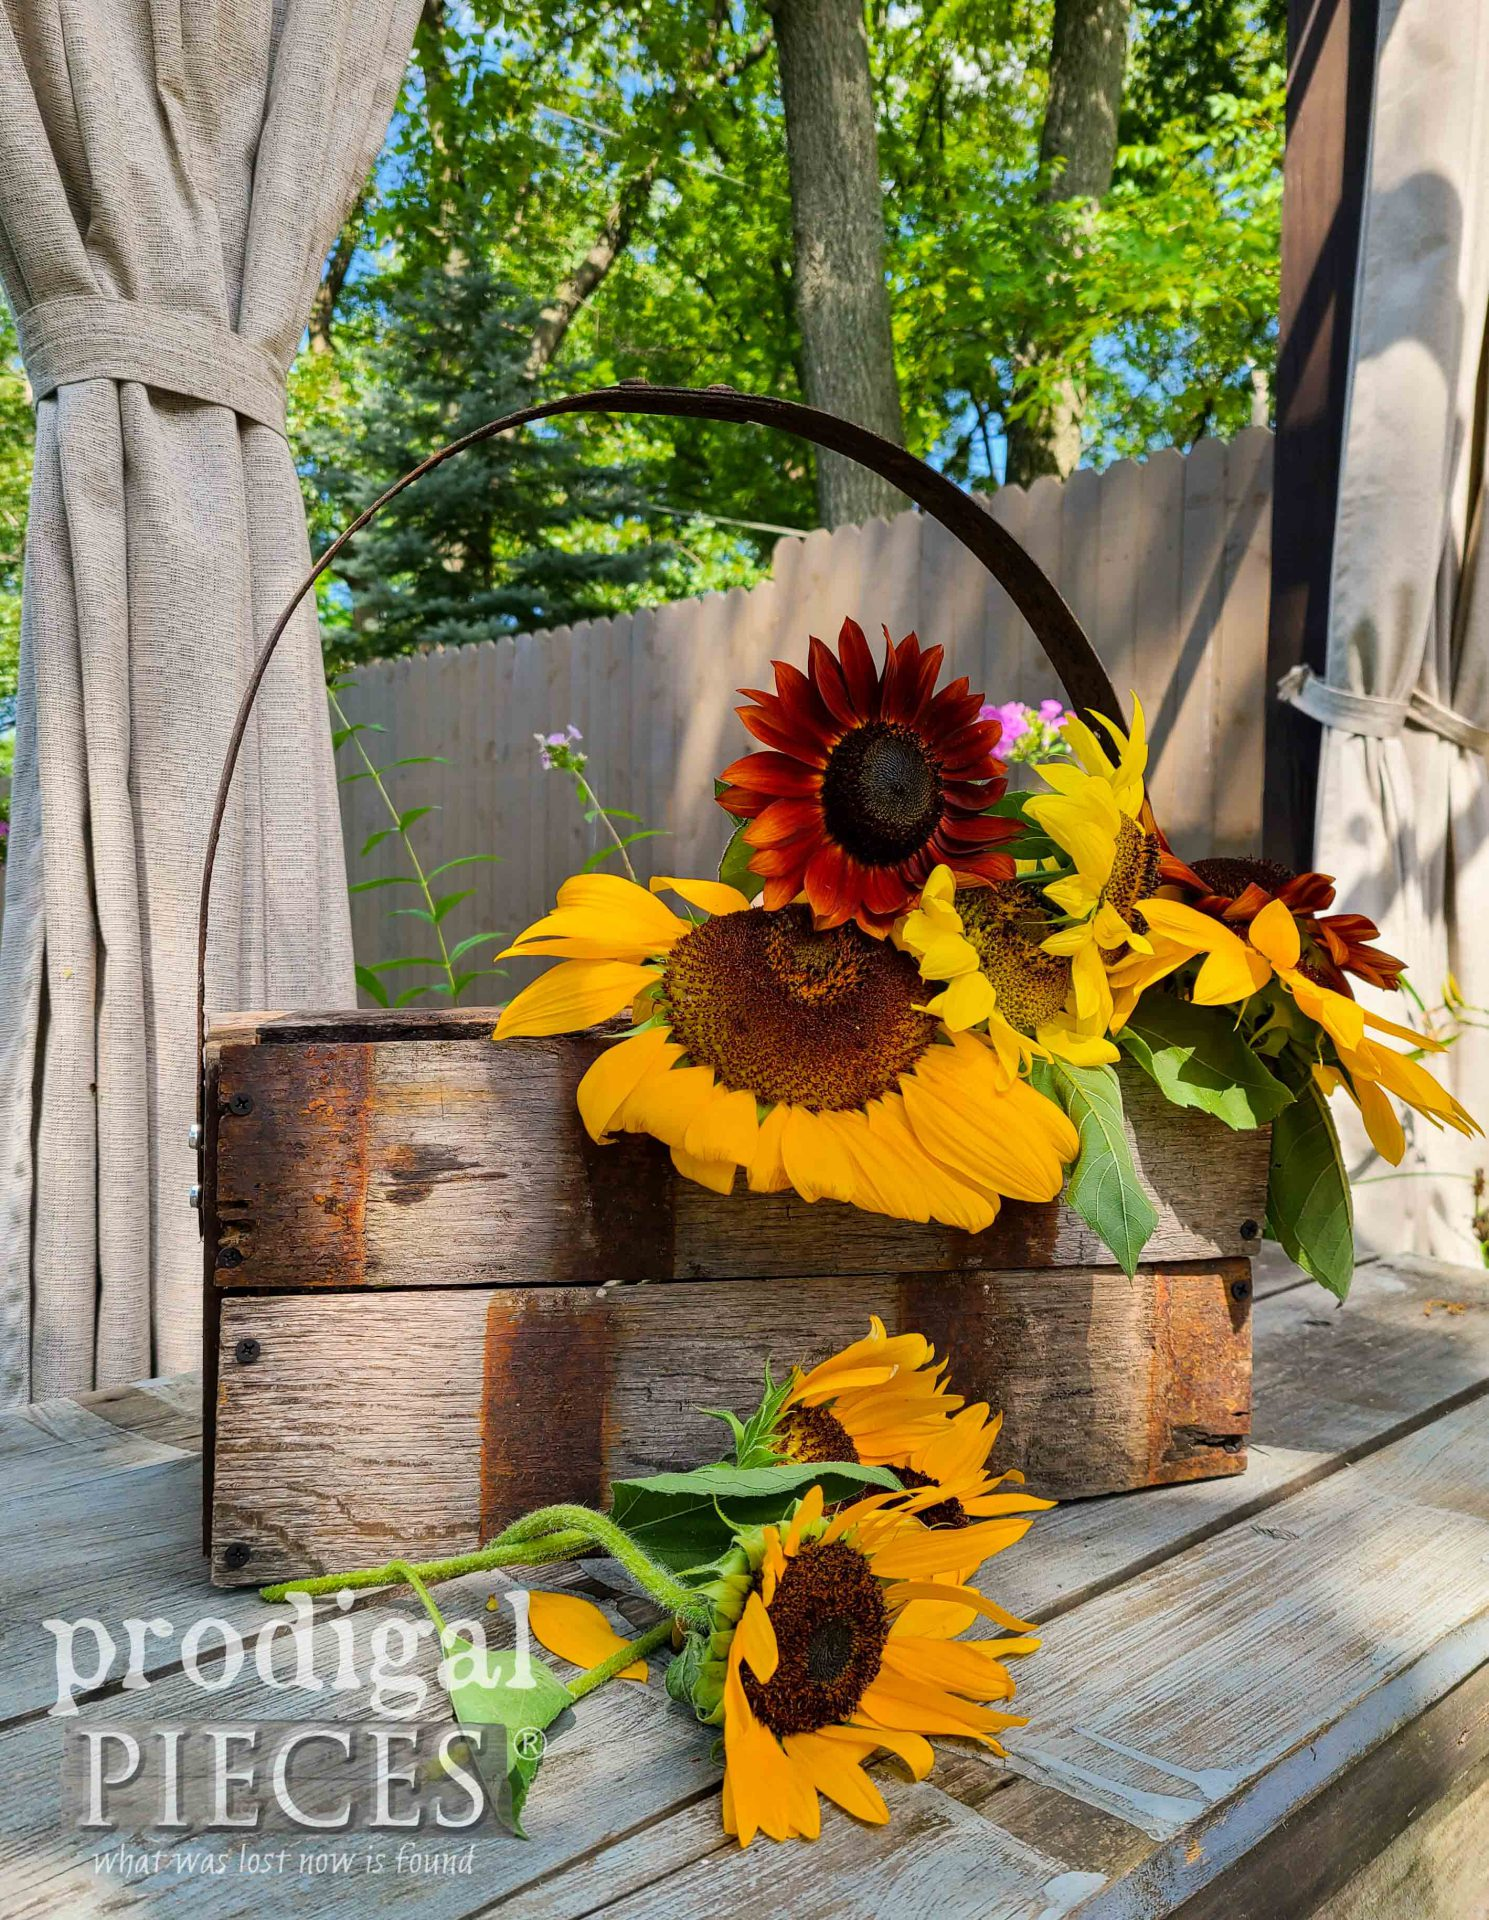 Upcycled Whiskey Barrel Tote by Larissa of Prodigal Pieces | prodigalpieces.com #prodigalpieces #handmade #home #homedecor